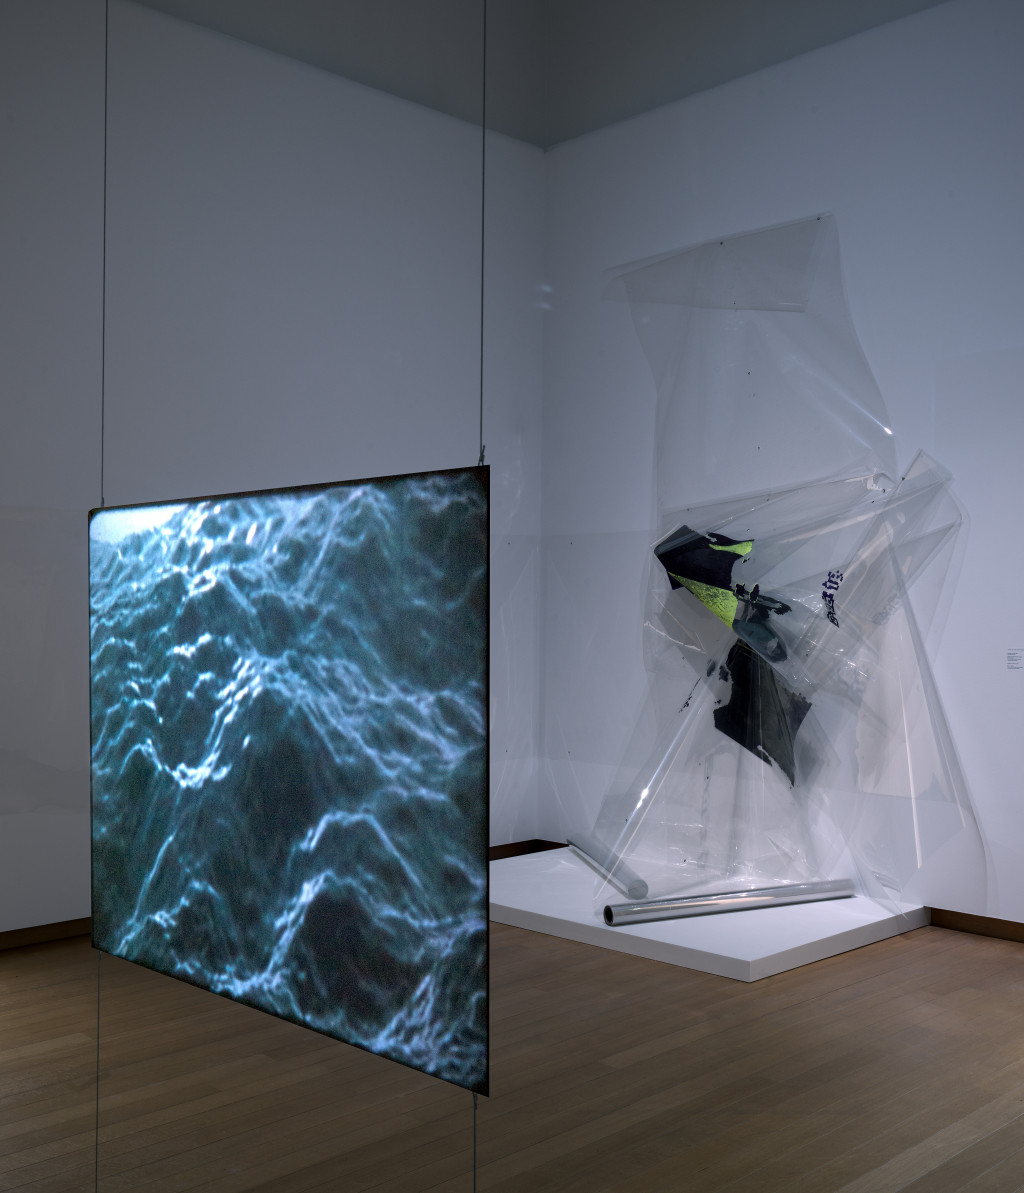 Installation view. Photographer: Gert Jan van Rooij